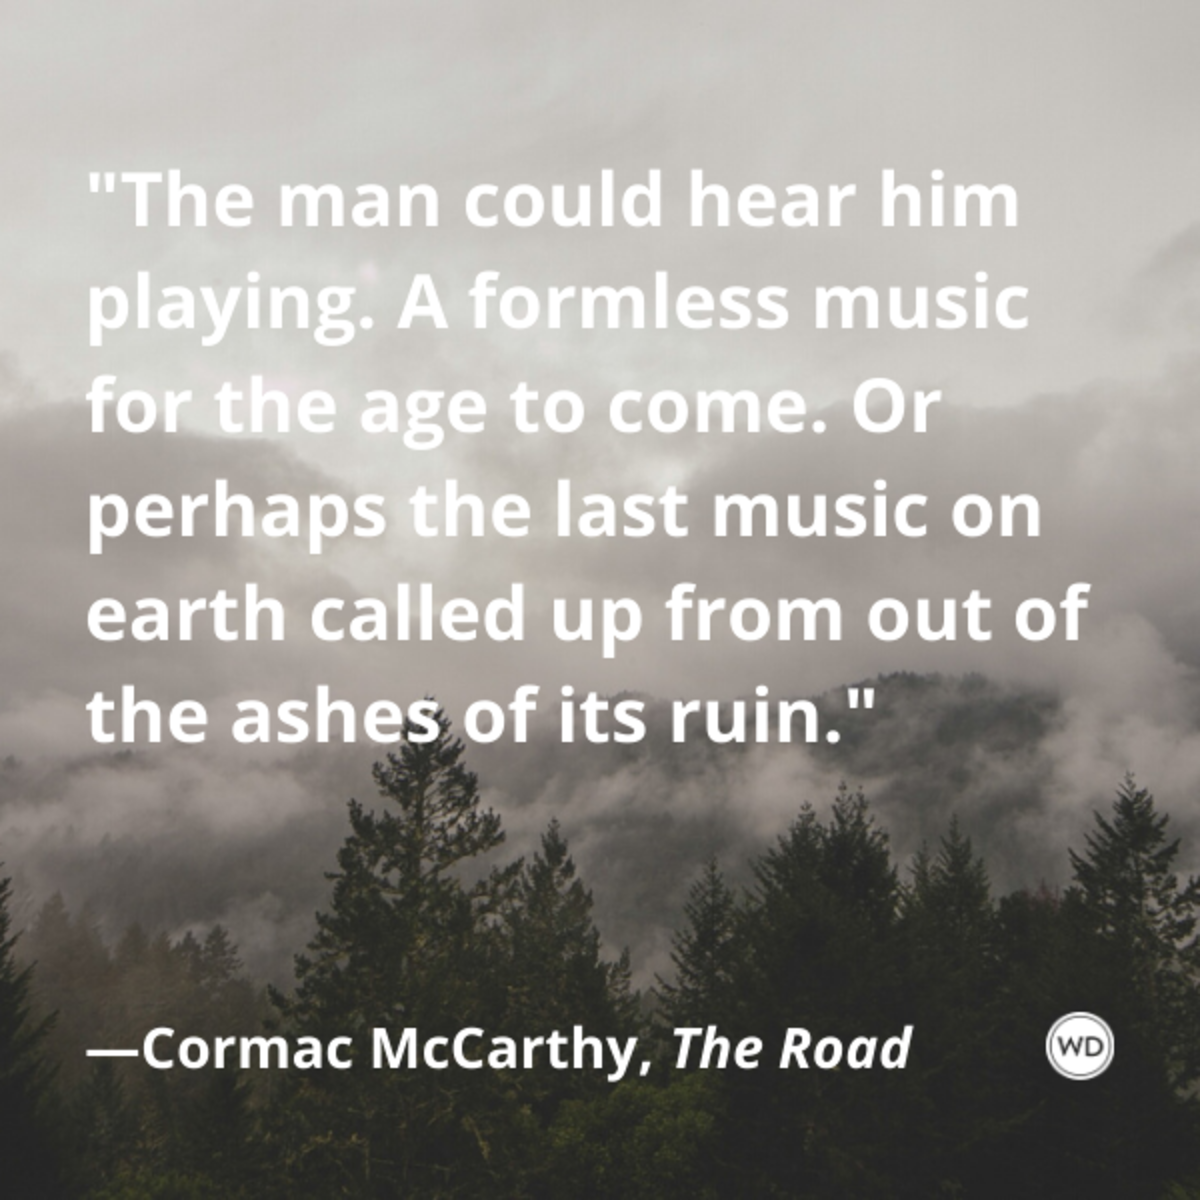 cormac_mccarthy_the_road_quotes_the_man_could_hear_him_playing_a_formless_music_for_the_age_to_come